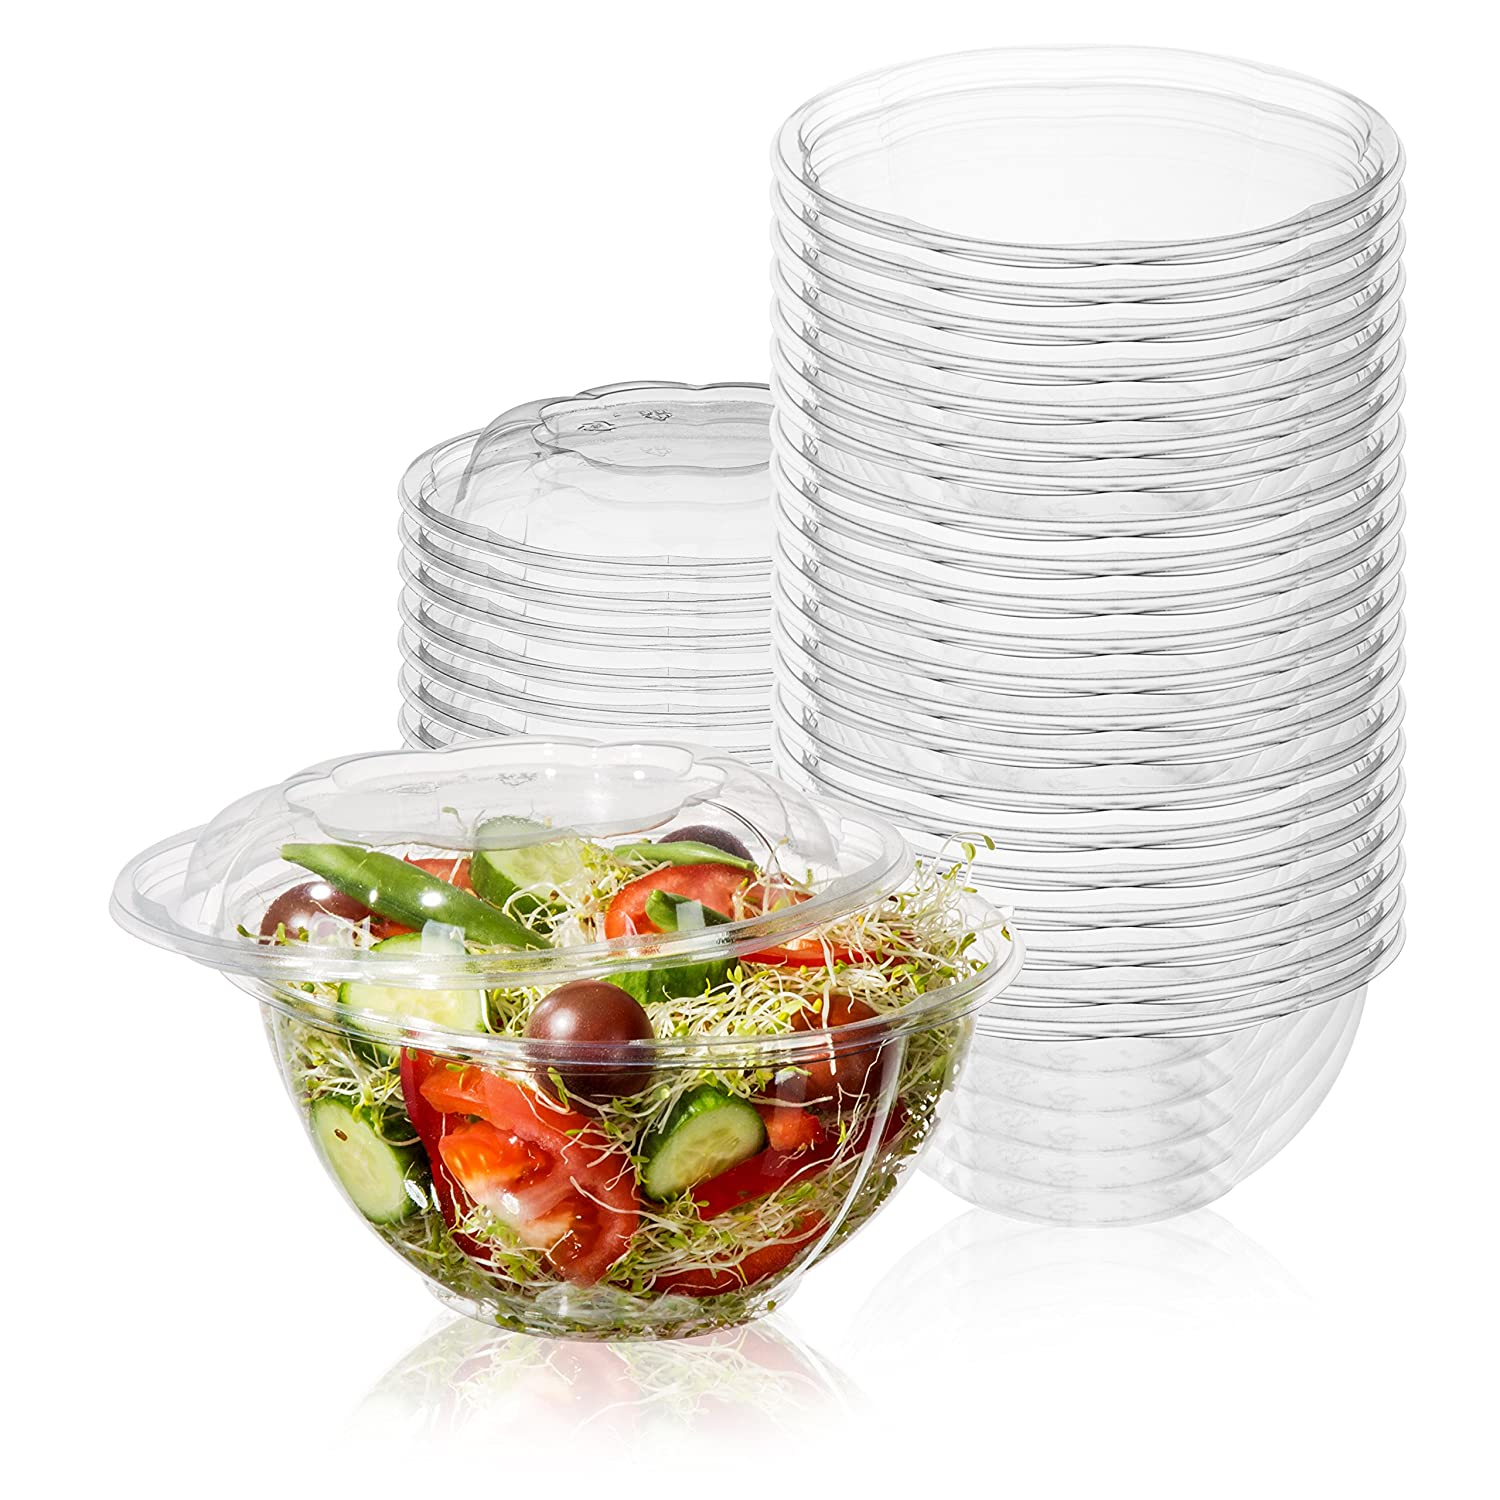 50-Pack 32oz Plastic Disposable Salad Bowls with Lids - Eco-Friendly Clear Food Containers - Extra-Thick Materials - Portable Serving Bowl Set to Pack Lunch - Super Strong Seal to Preserve Freshness DCS Deals inc.